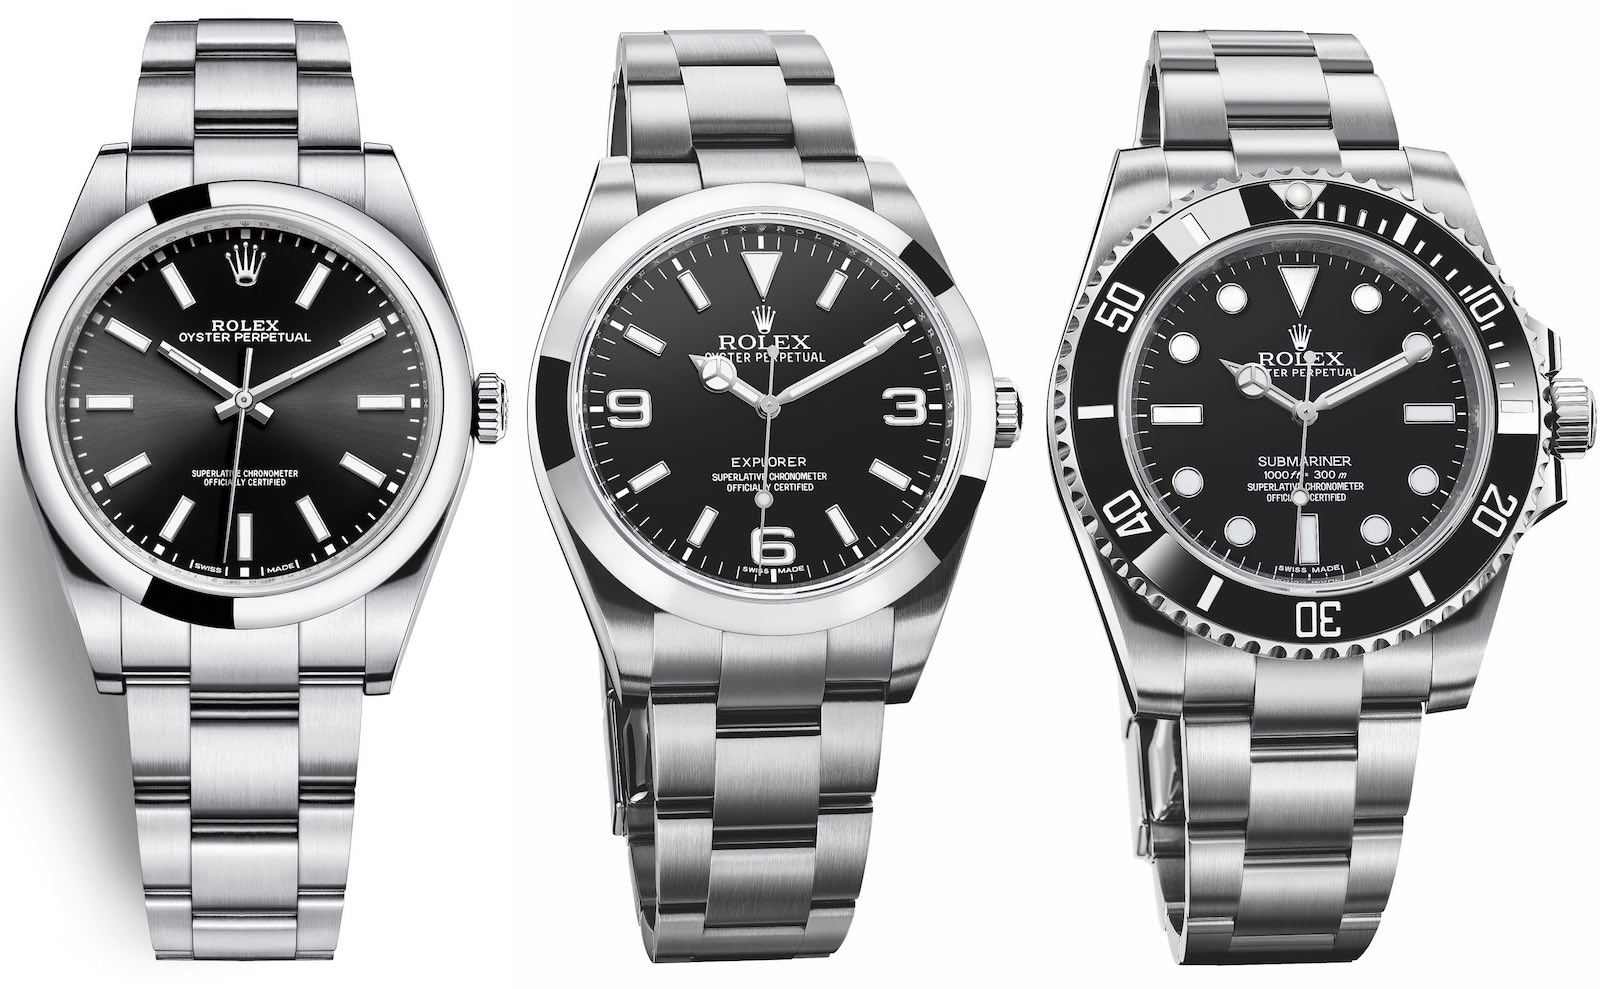 Rolex Explorer Rolex Explorer I 214270 39mm Review Ablogtowatch